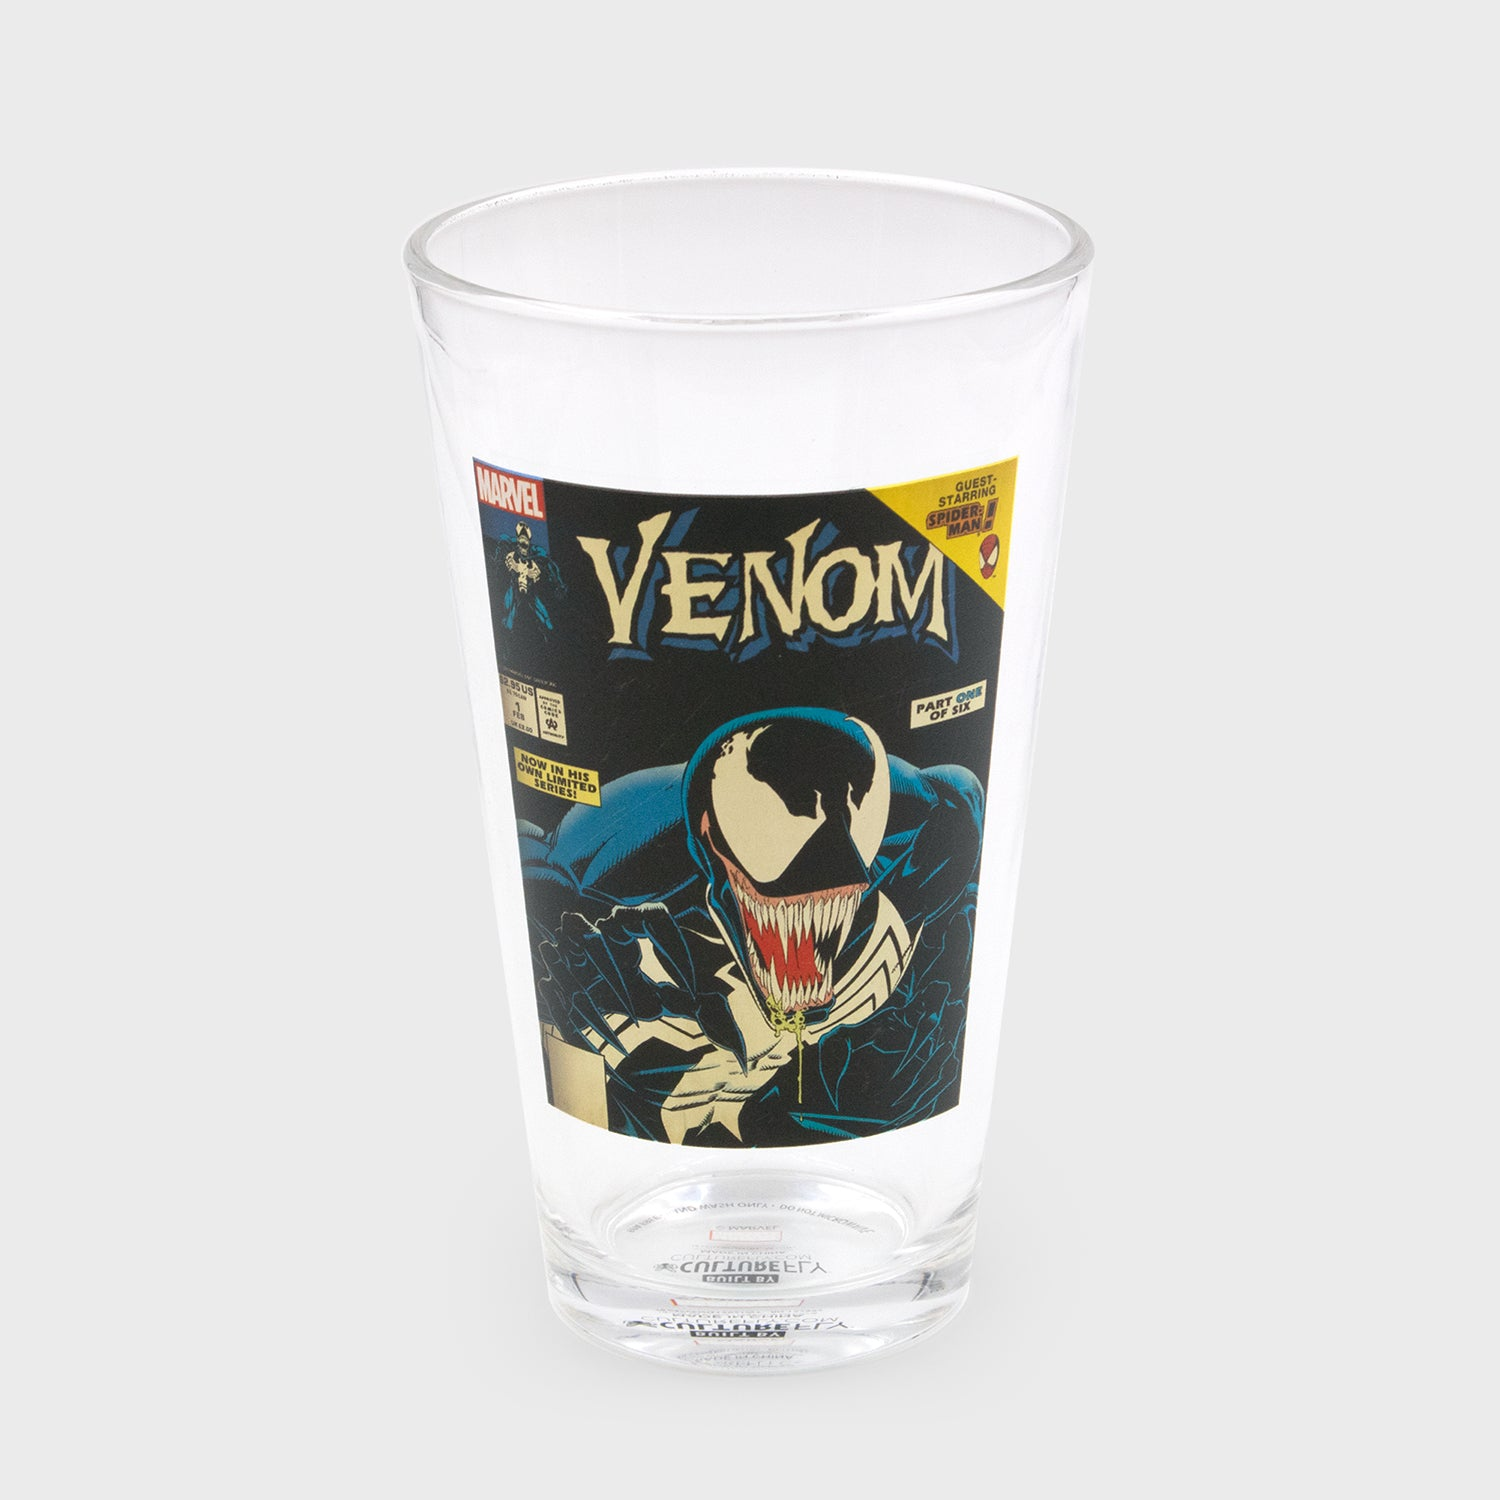 venom marvel spider-man comics collection collectibles exclusives collector's box culturefly pint glass drinkware kitchenware